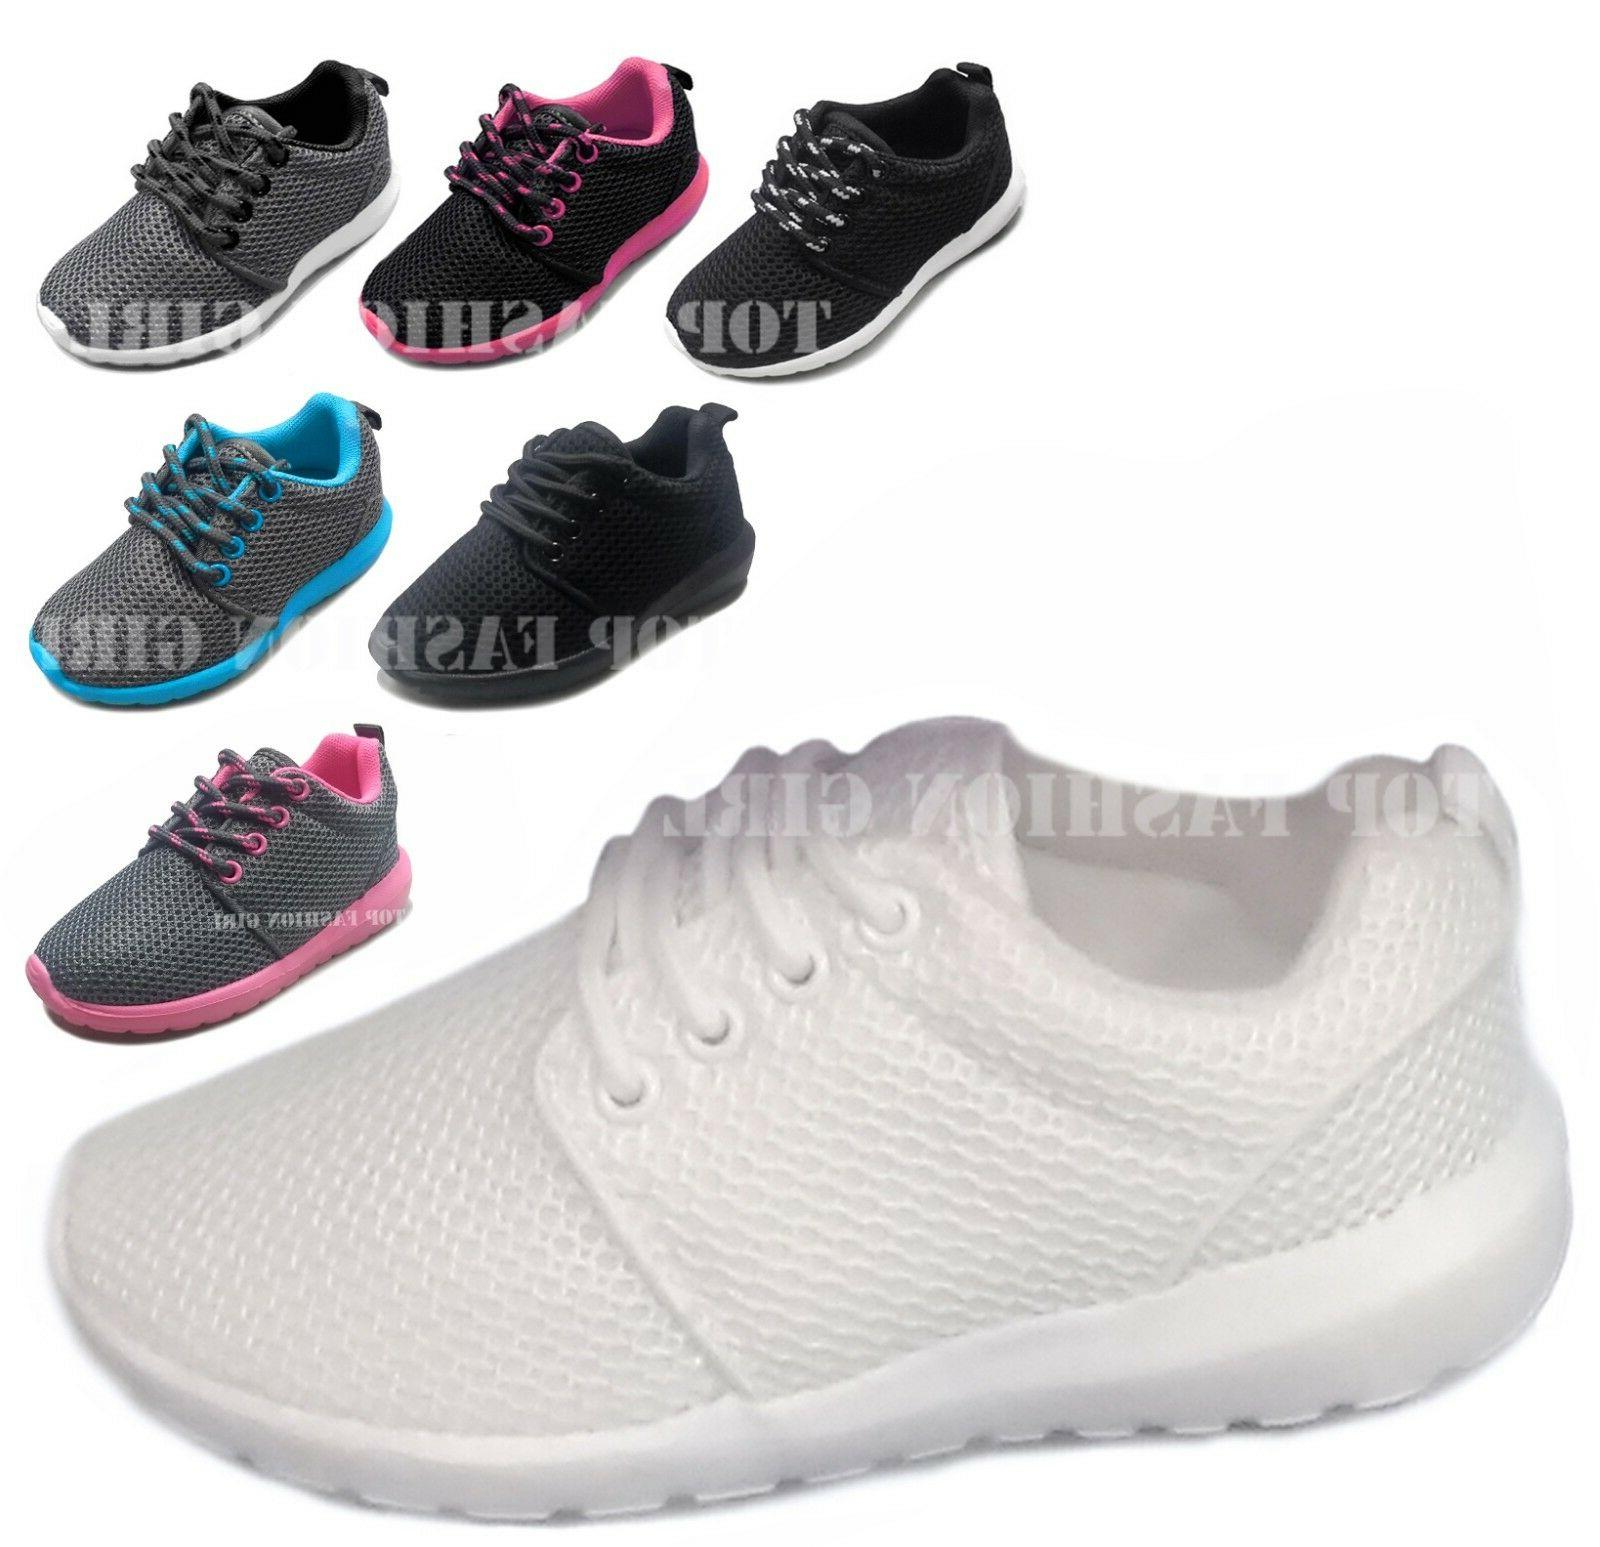 NEW Kids Boys Girls Mesh Sneaker Lace Up Sporty Tennis Shoe